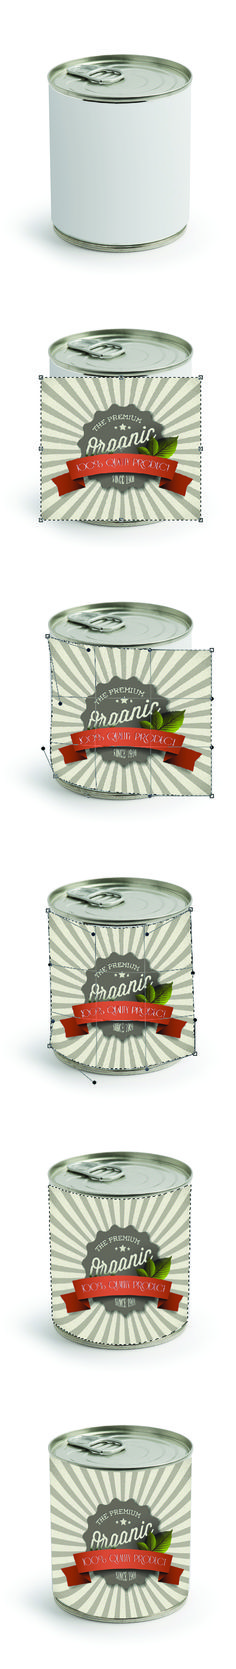 Learn how to wrap a label on a can in Photoshop with this Warp tool tutorial from Smartpress.com.